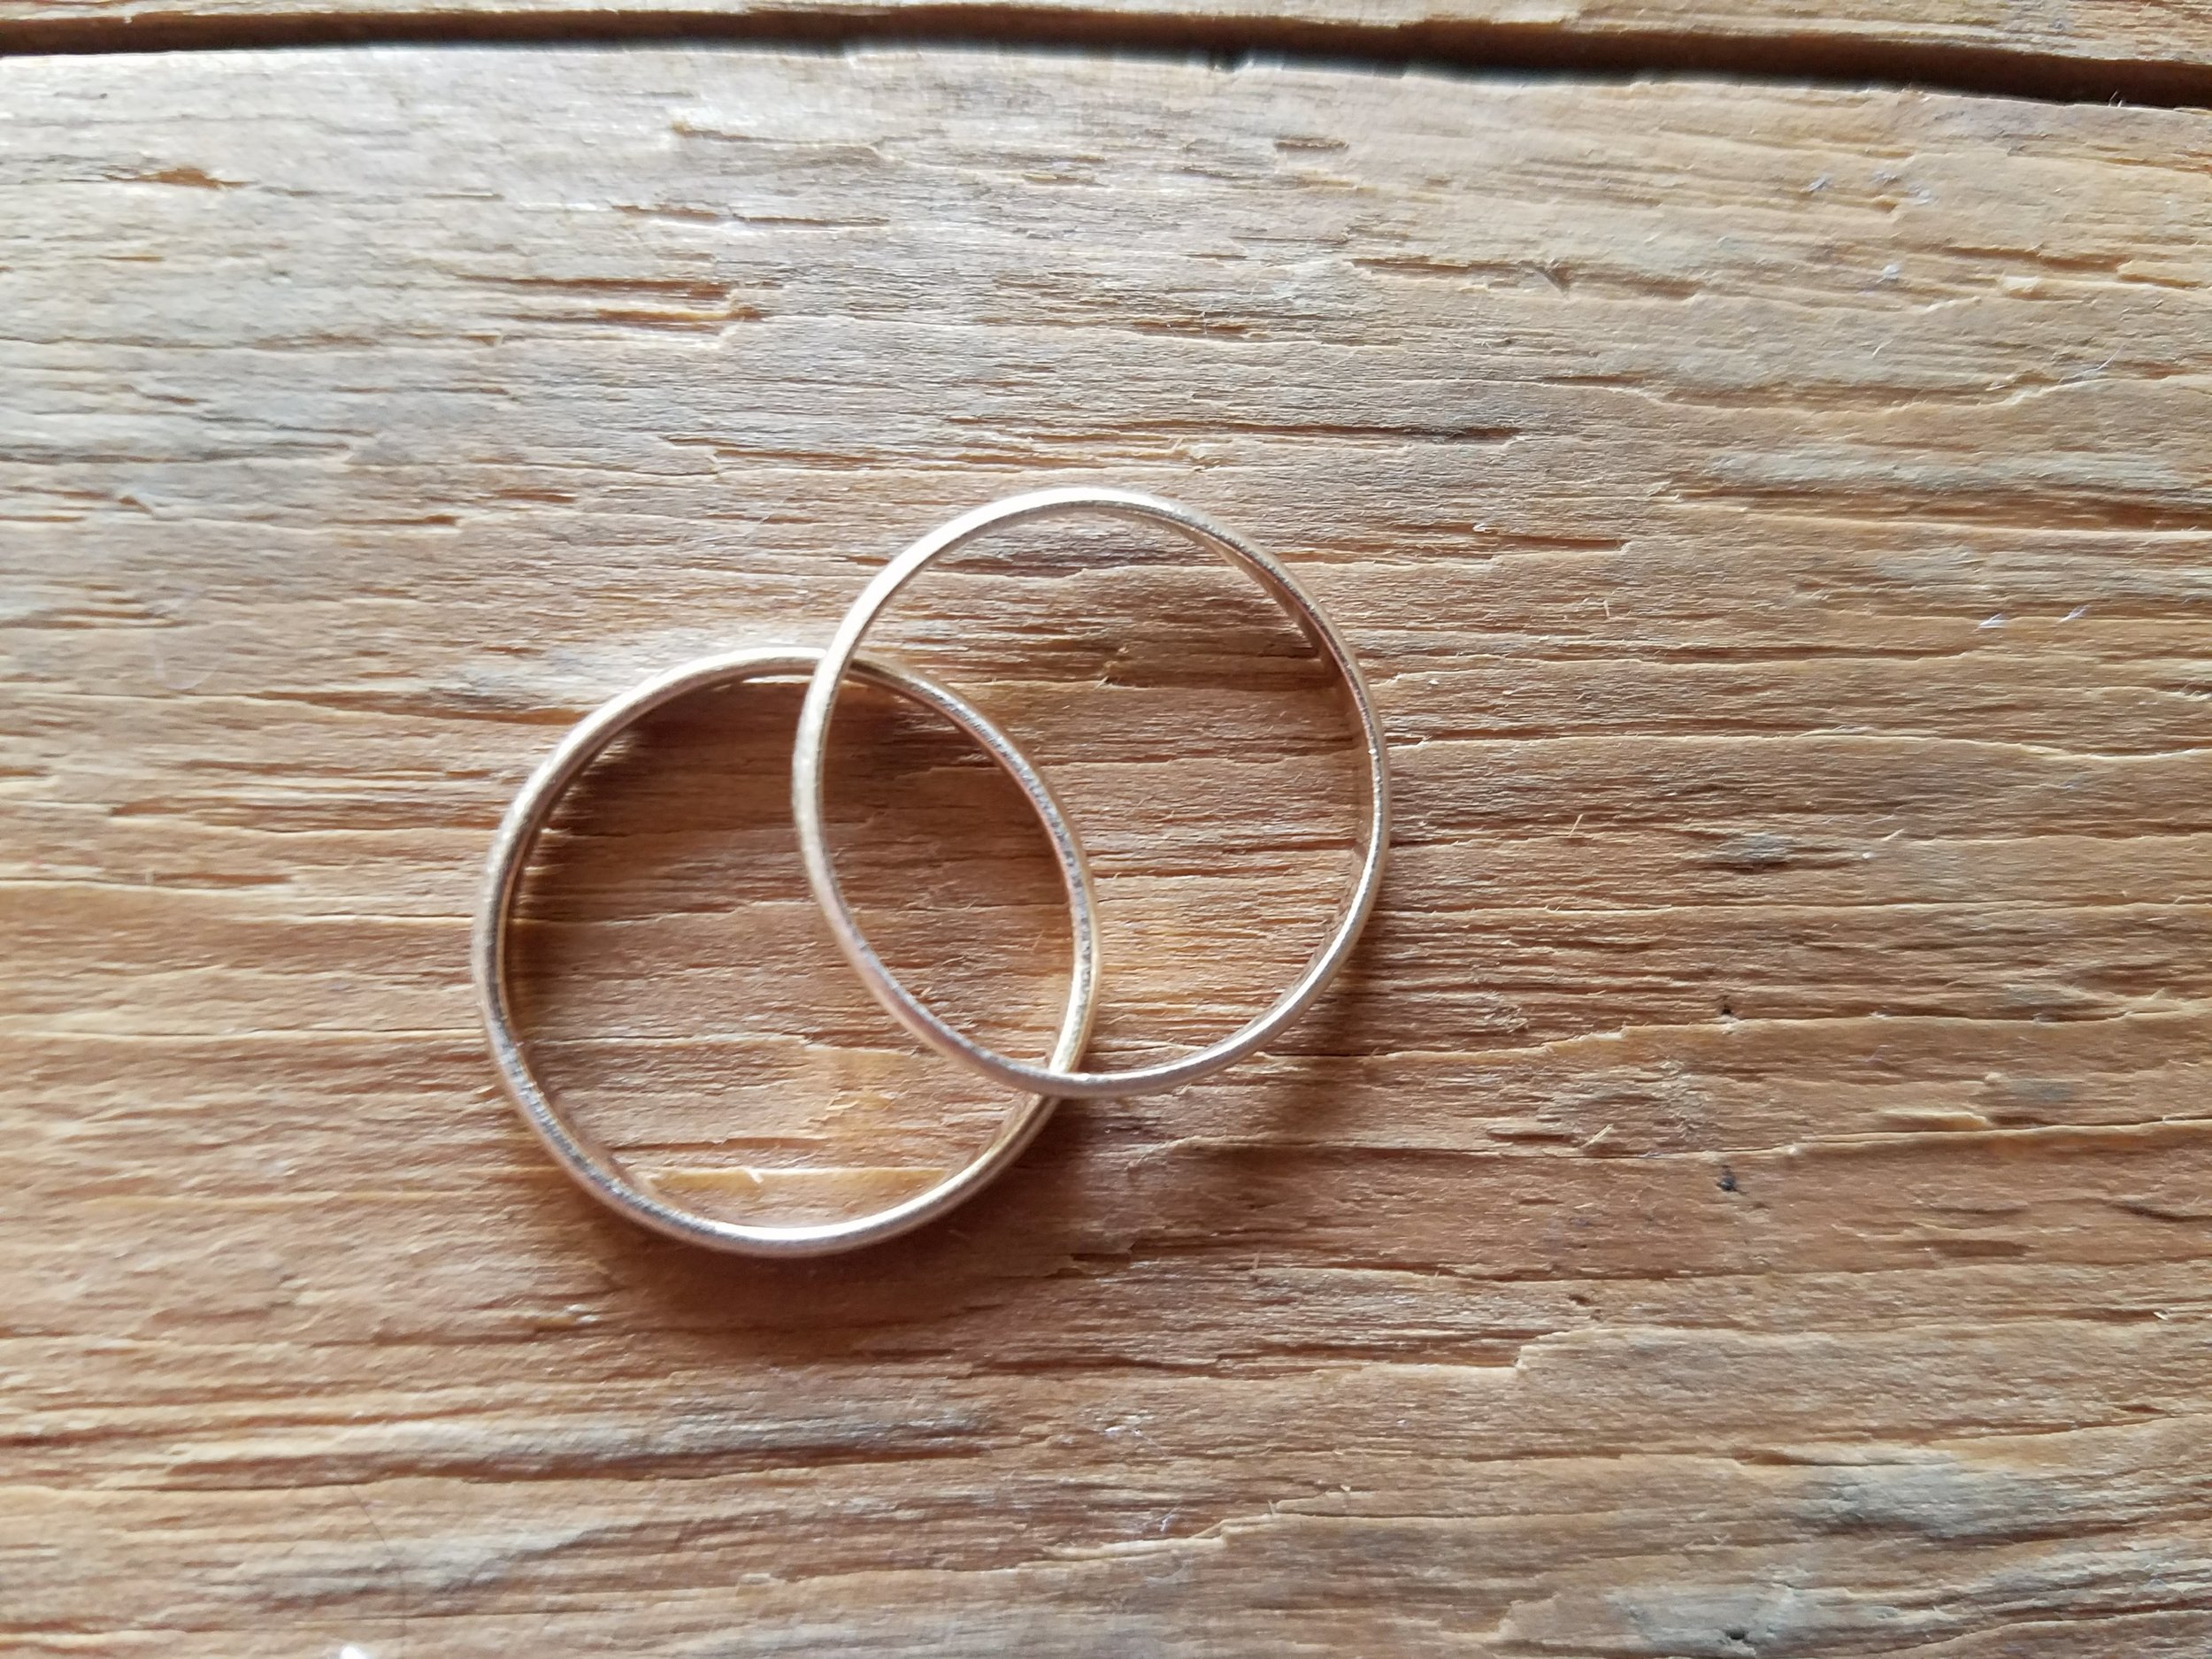 14k Gold Wedding Rings front view